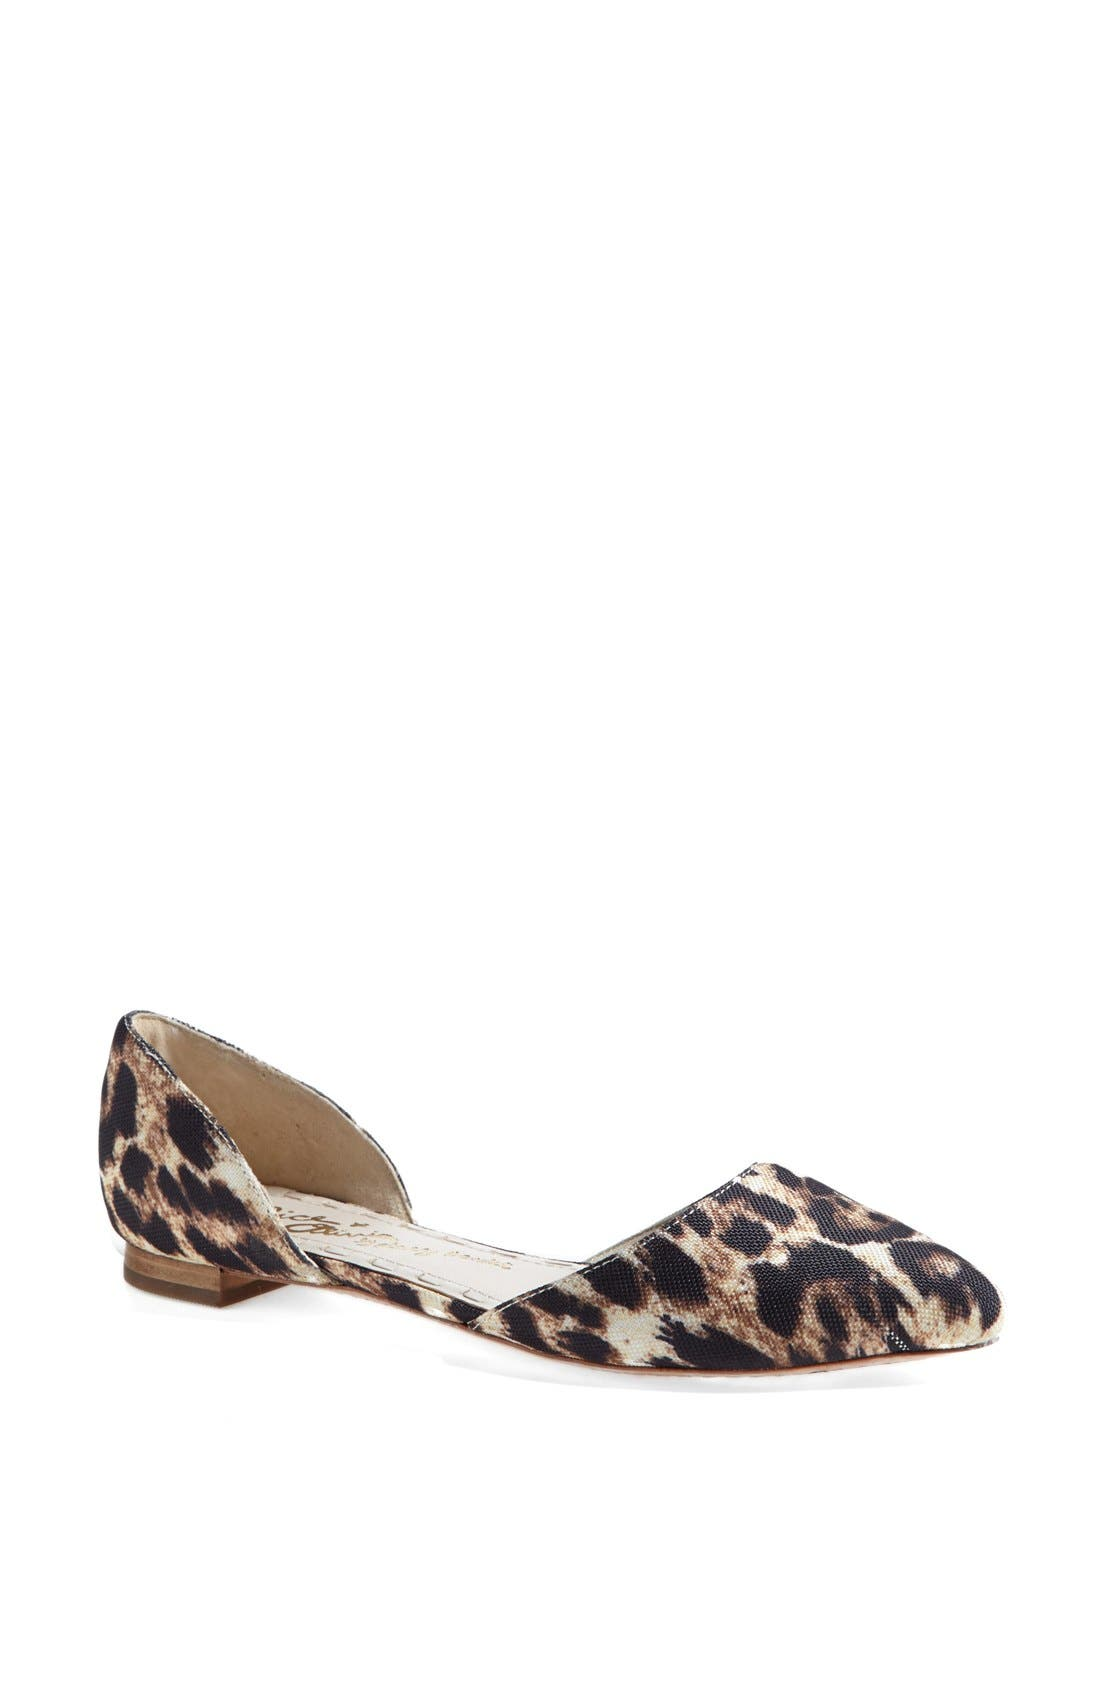 Alternate Image 1 Selected - Alice + Olivia 'Hilary' d'Orsay Flat (Online Only)